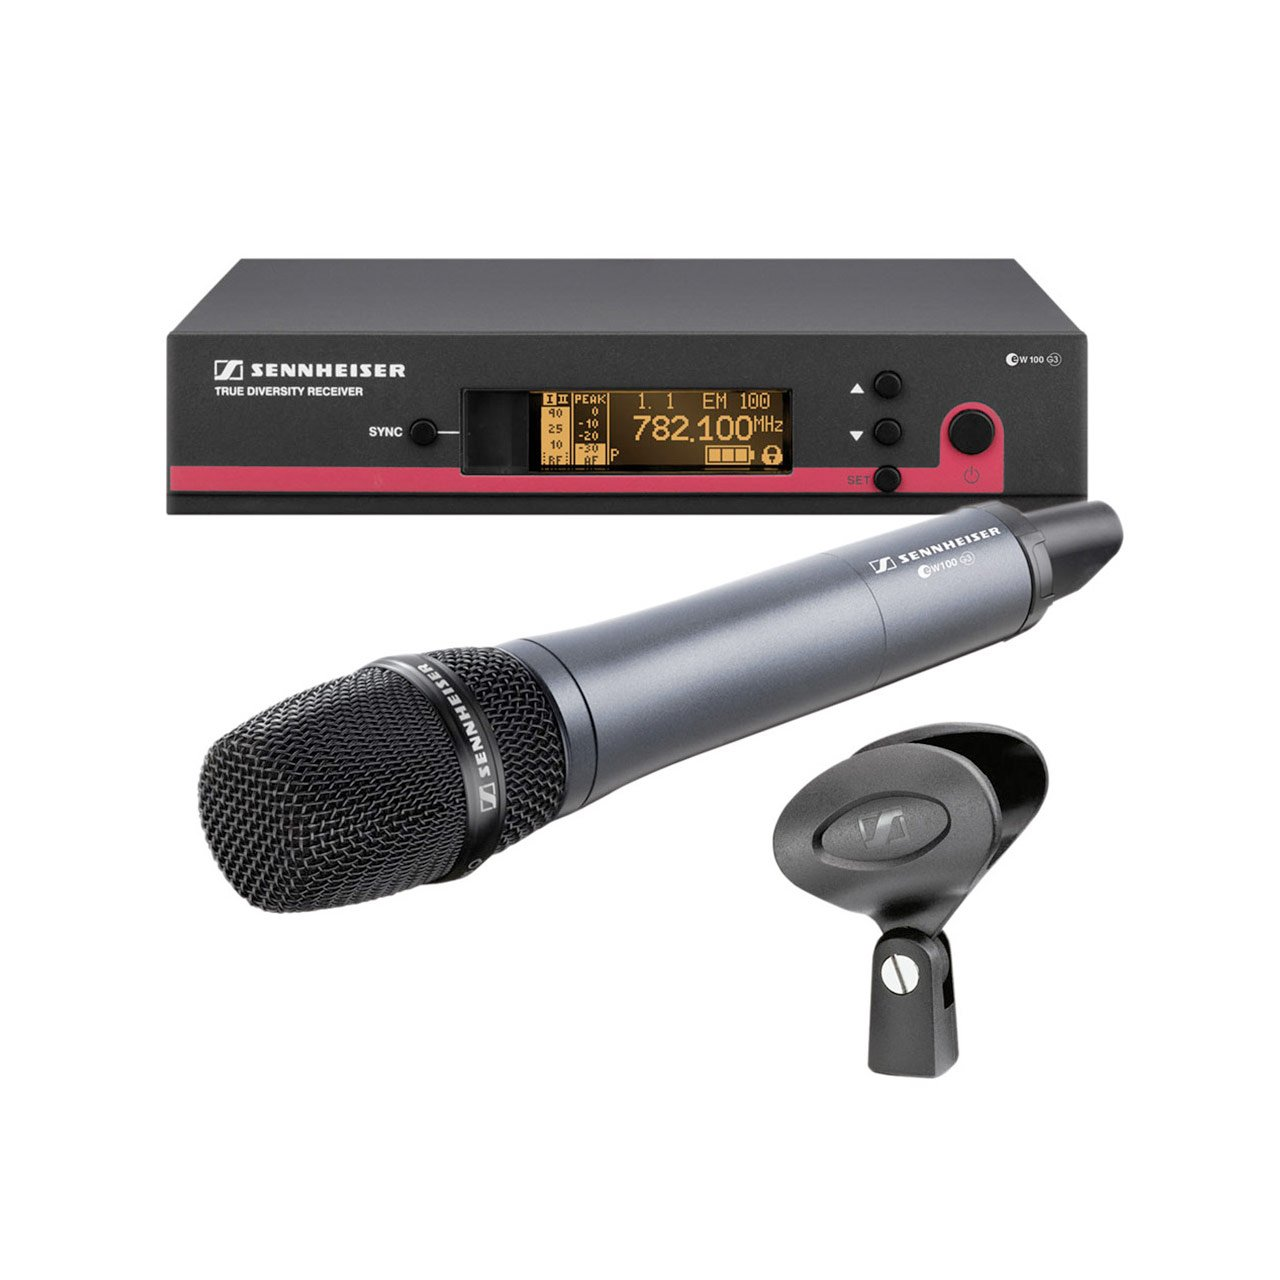 Wireless Systems - Sennheiser EW 100-945 G3 Wireless Vocal Set